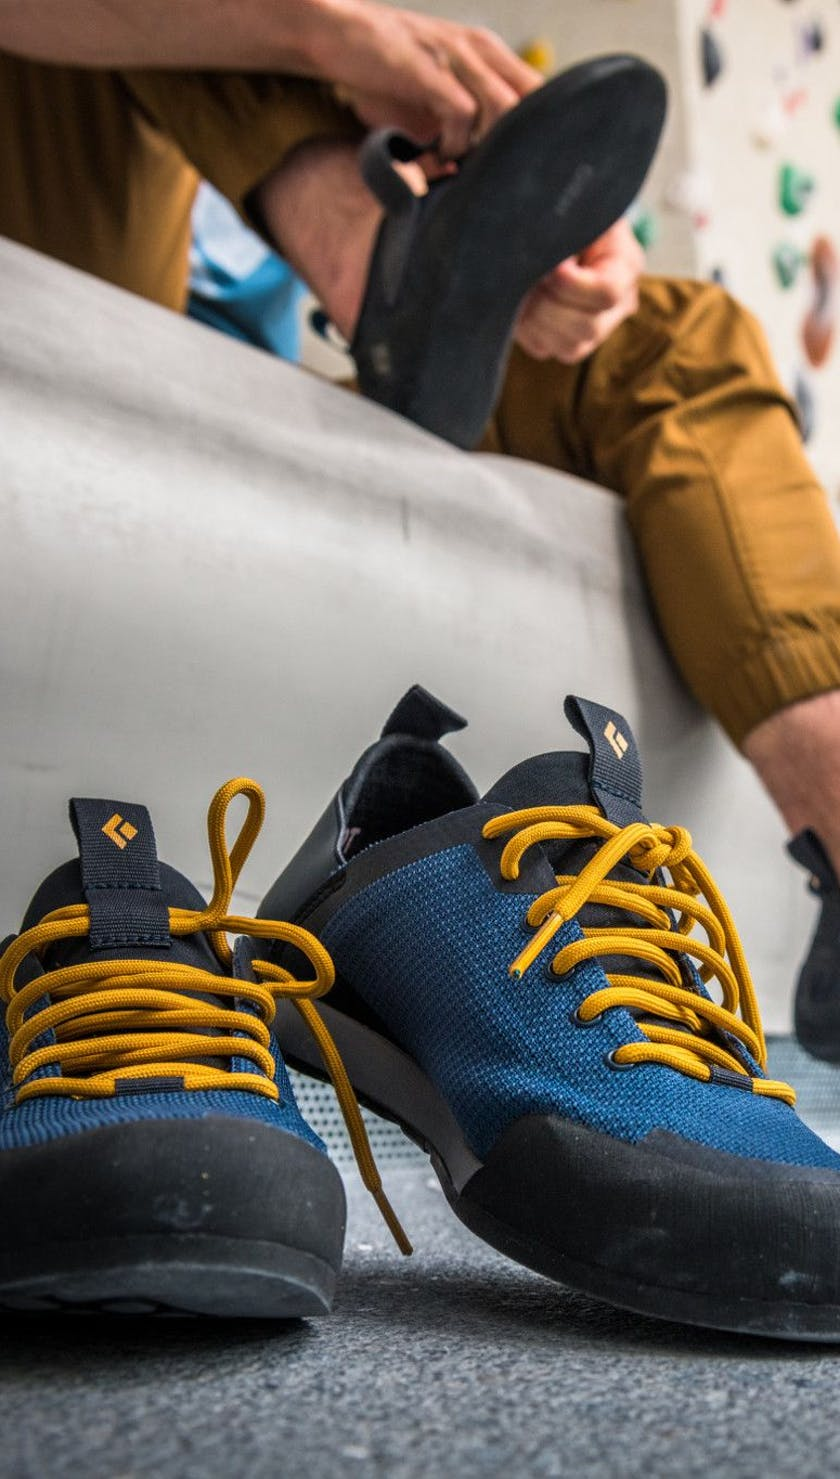 A pair of session shoes on the ground while two people put on climbing shoes in the background